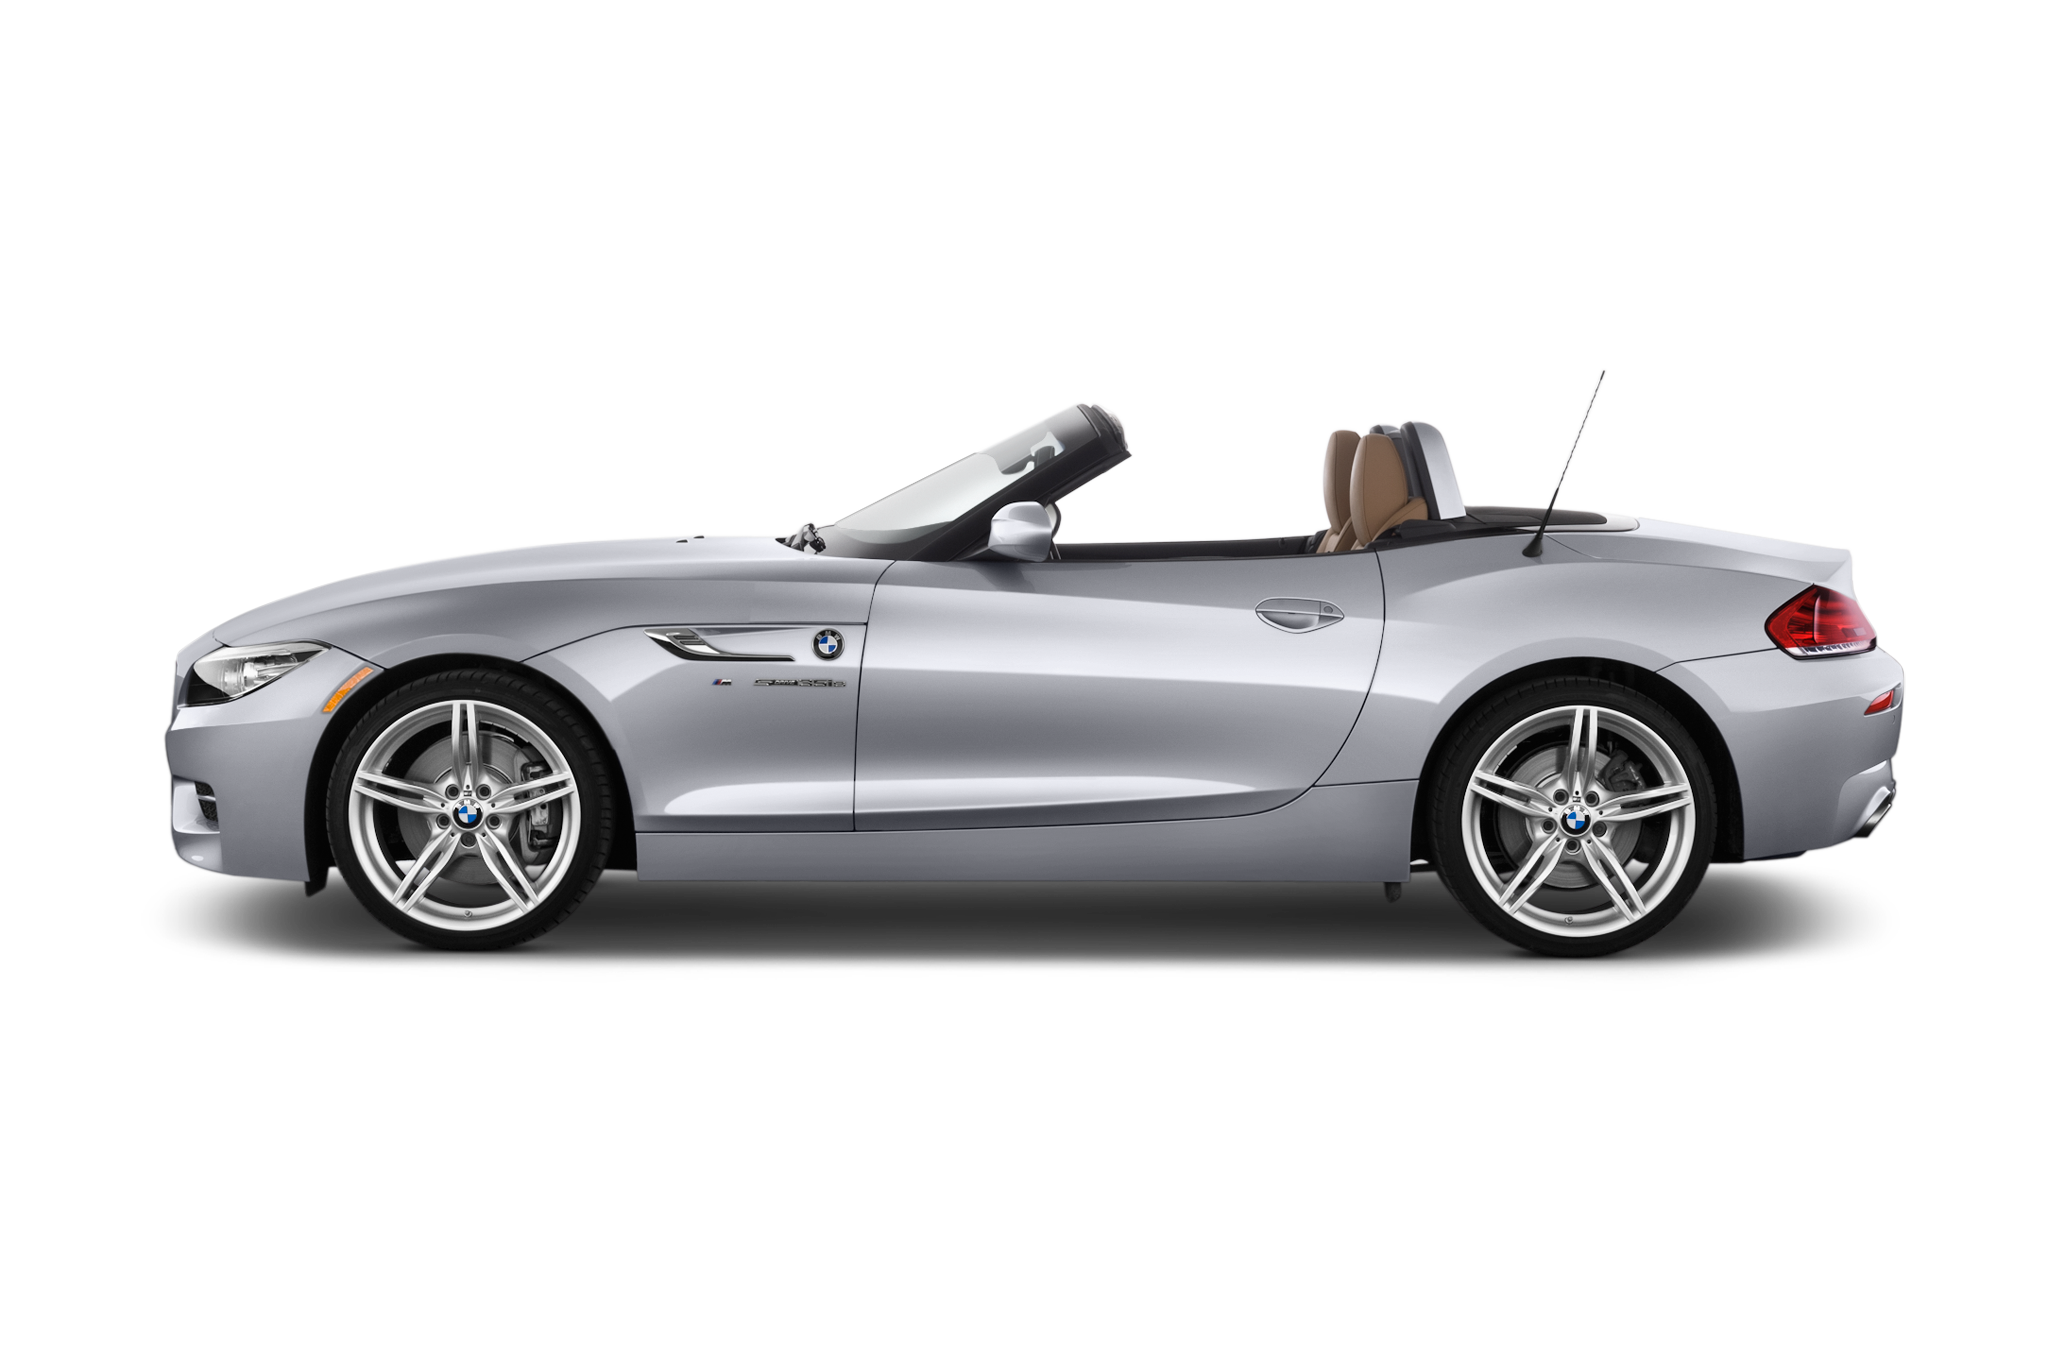 2009 Bmw Z4 Bmw Convertible Sport Coupe Automobile